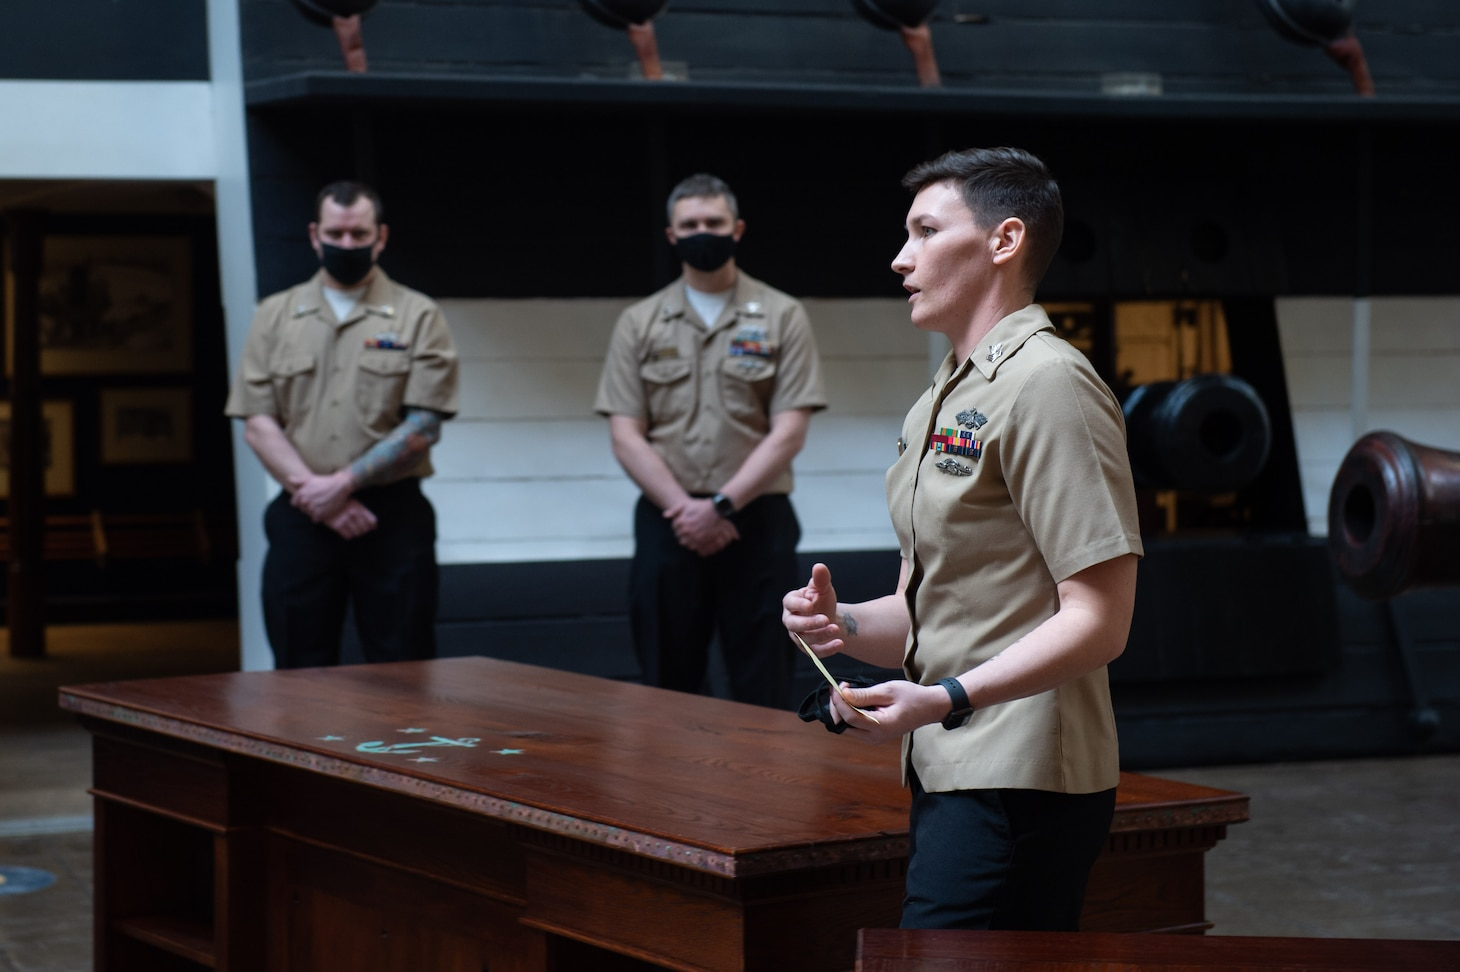 Builder 1st Class Hilary Lemelin, gives a speech during an executive desk presentation event at the National Museum of the U.S. Navy.